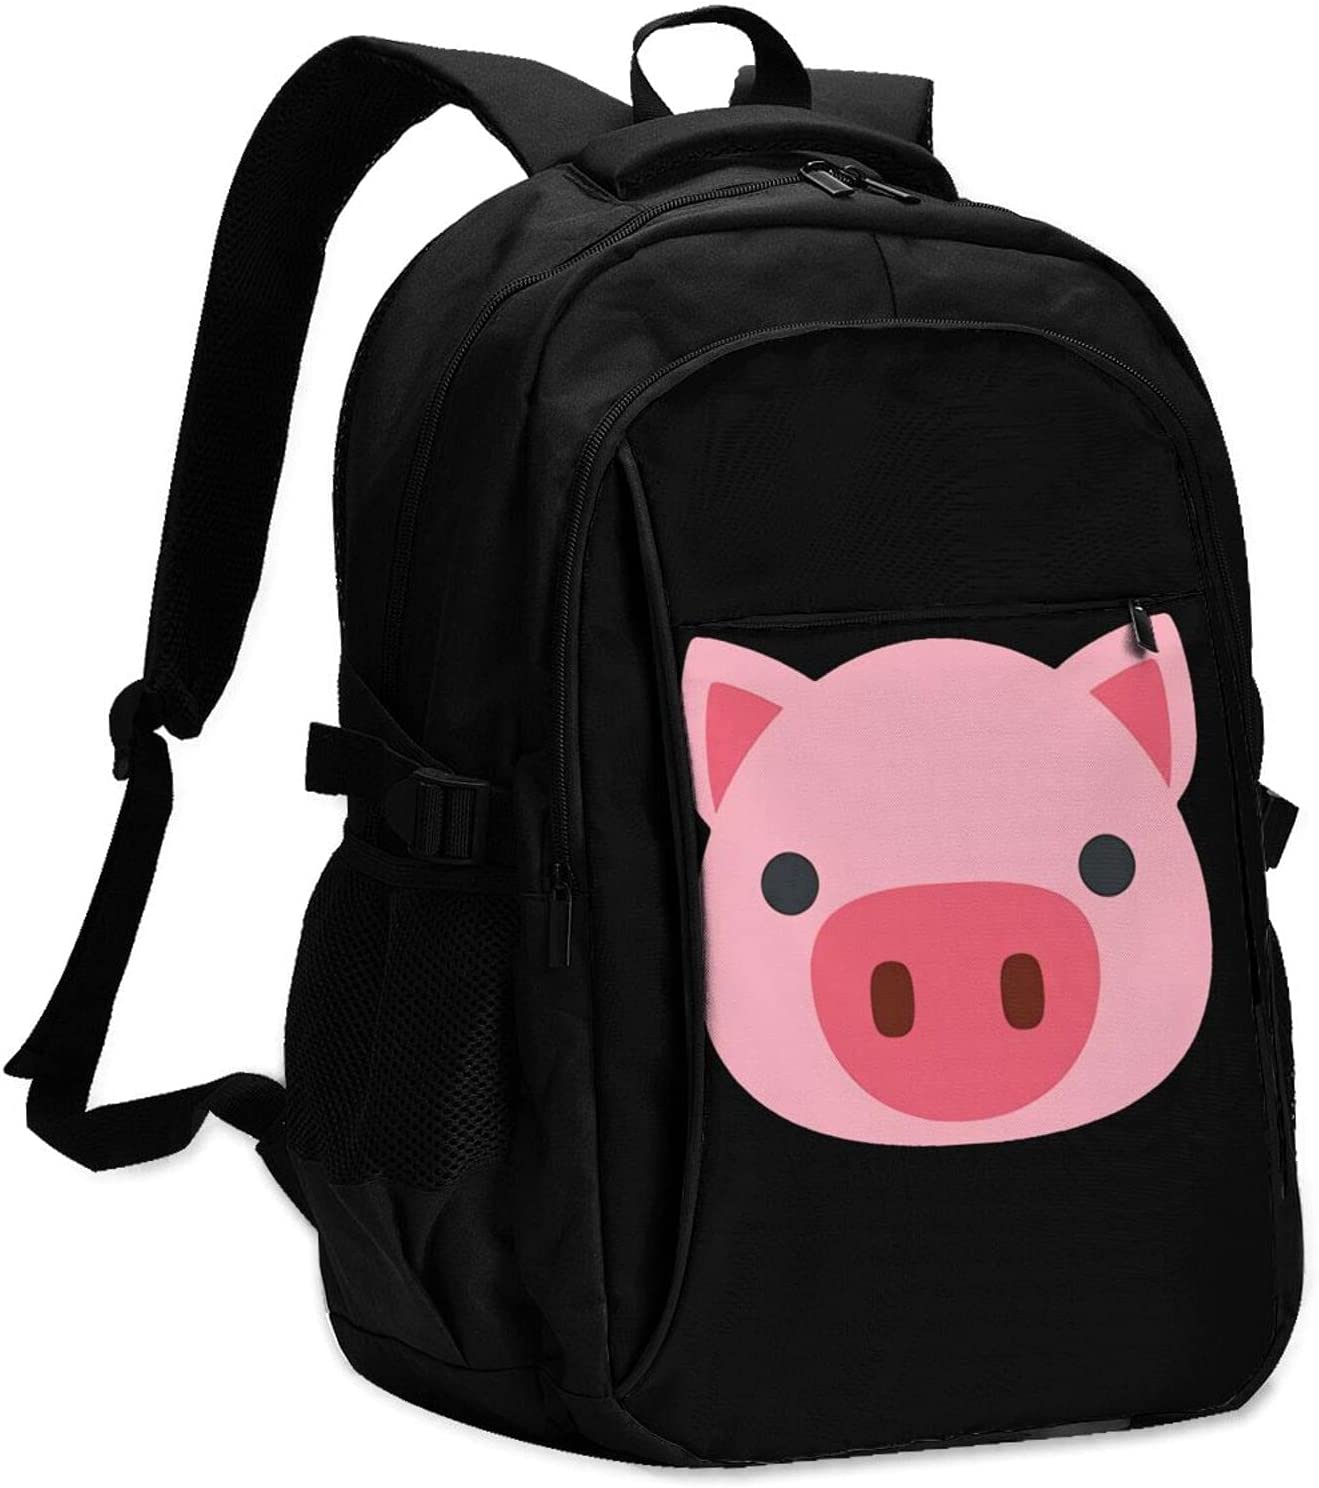 Pig Popular products 40% OFF Cheap Sale Face Backpack School Bag With Port Trav Charging Student Usb